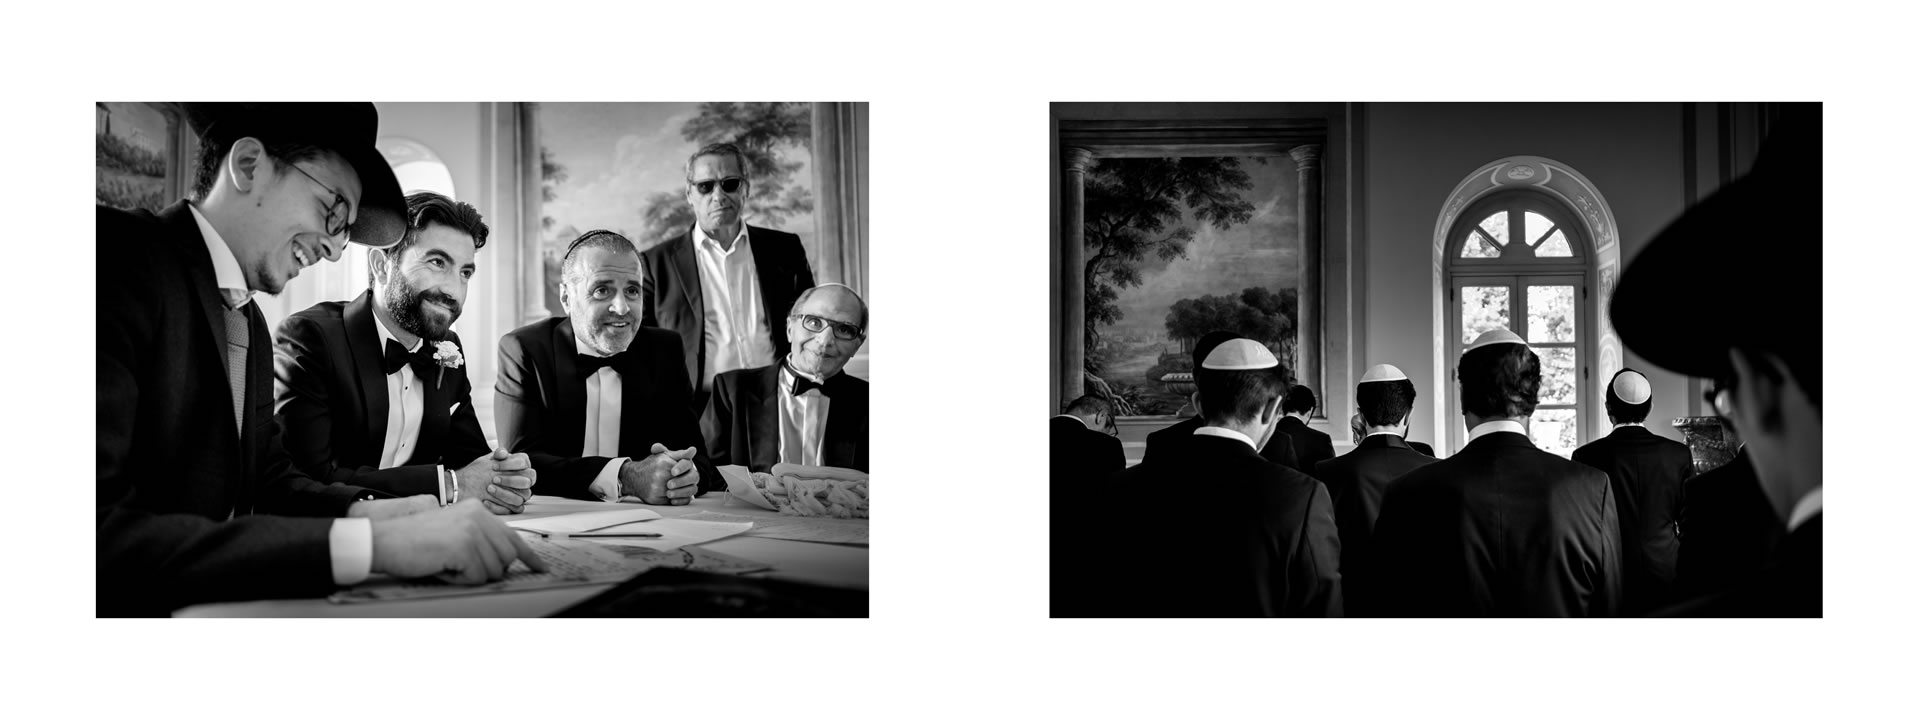 Jewish marriage in Rome: a photoreportage - 9 :: Jewish marriage in Rome: a photoreportage :: Luxury wedding photography - 8 :: Jewish marriage in Rome: a photoreportage - 9